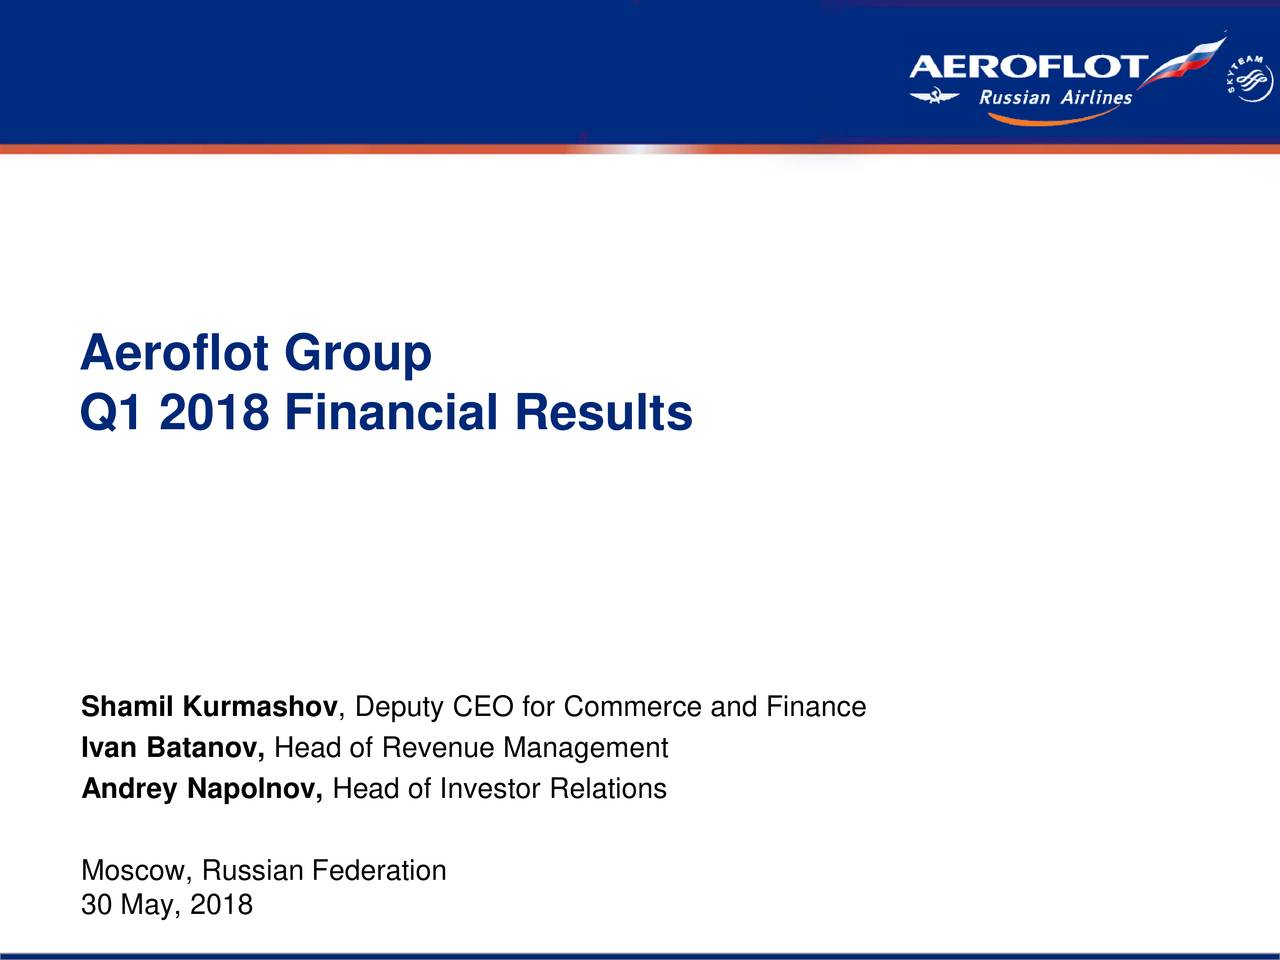 Aeroflot Group Q1 2018 Financial Results Shamil Kurmashov, Deputy CEO for Commerce and Finance Ivan Batanov, Head of Revenue Management Andrey Napolnov, Head of Investor Relations Moscow, Russian Federation 30 May, 2018 1